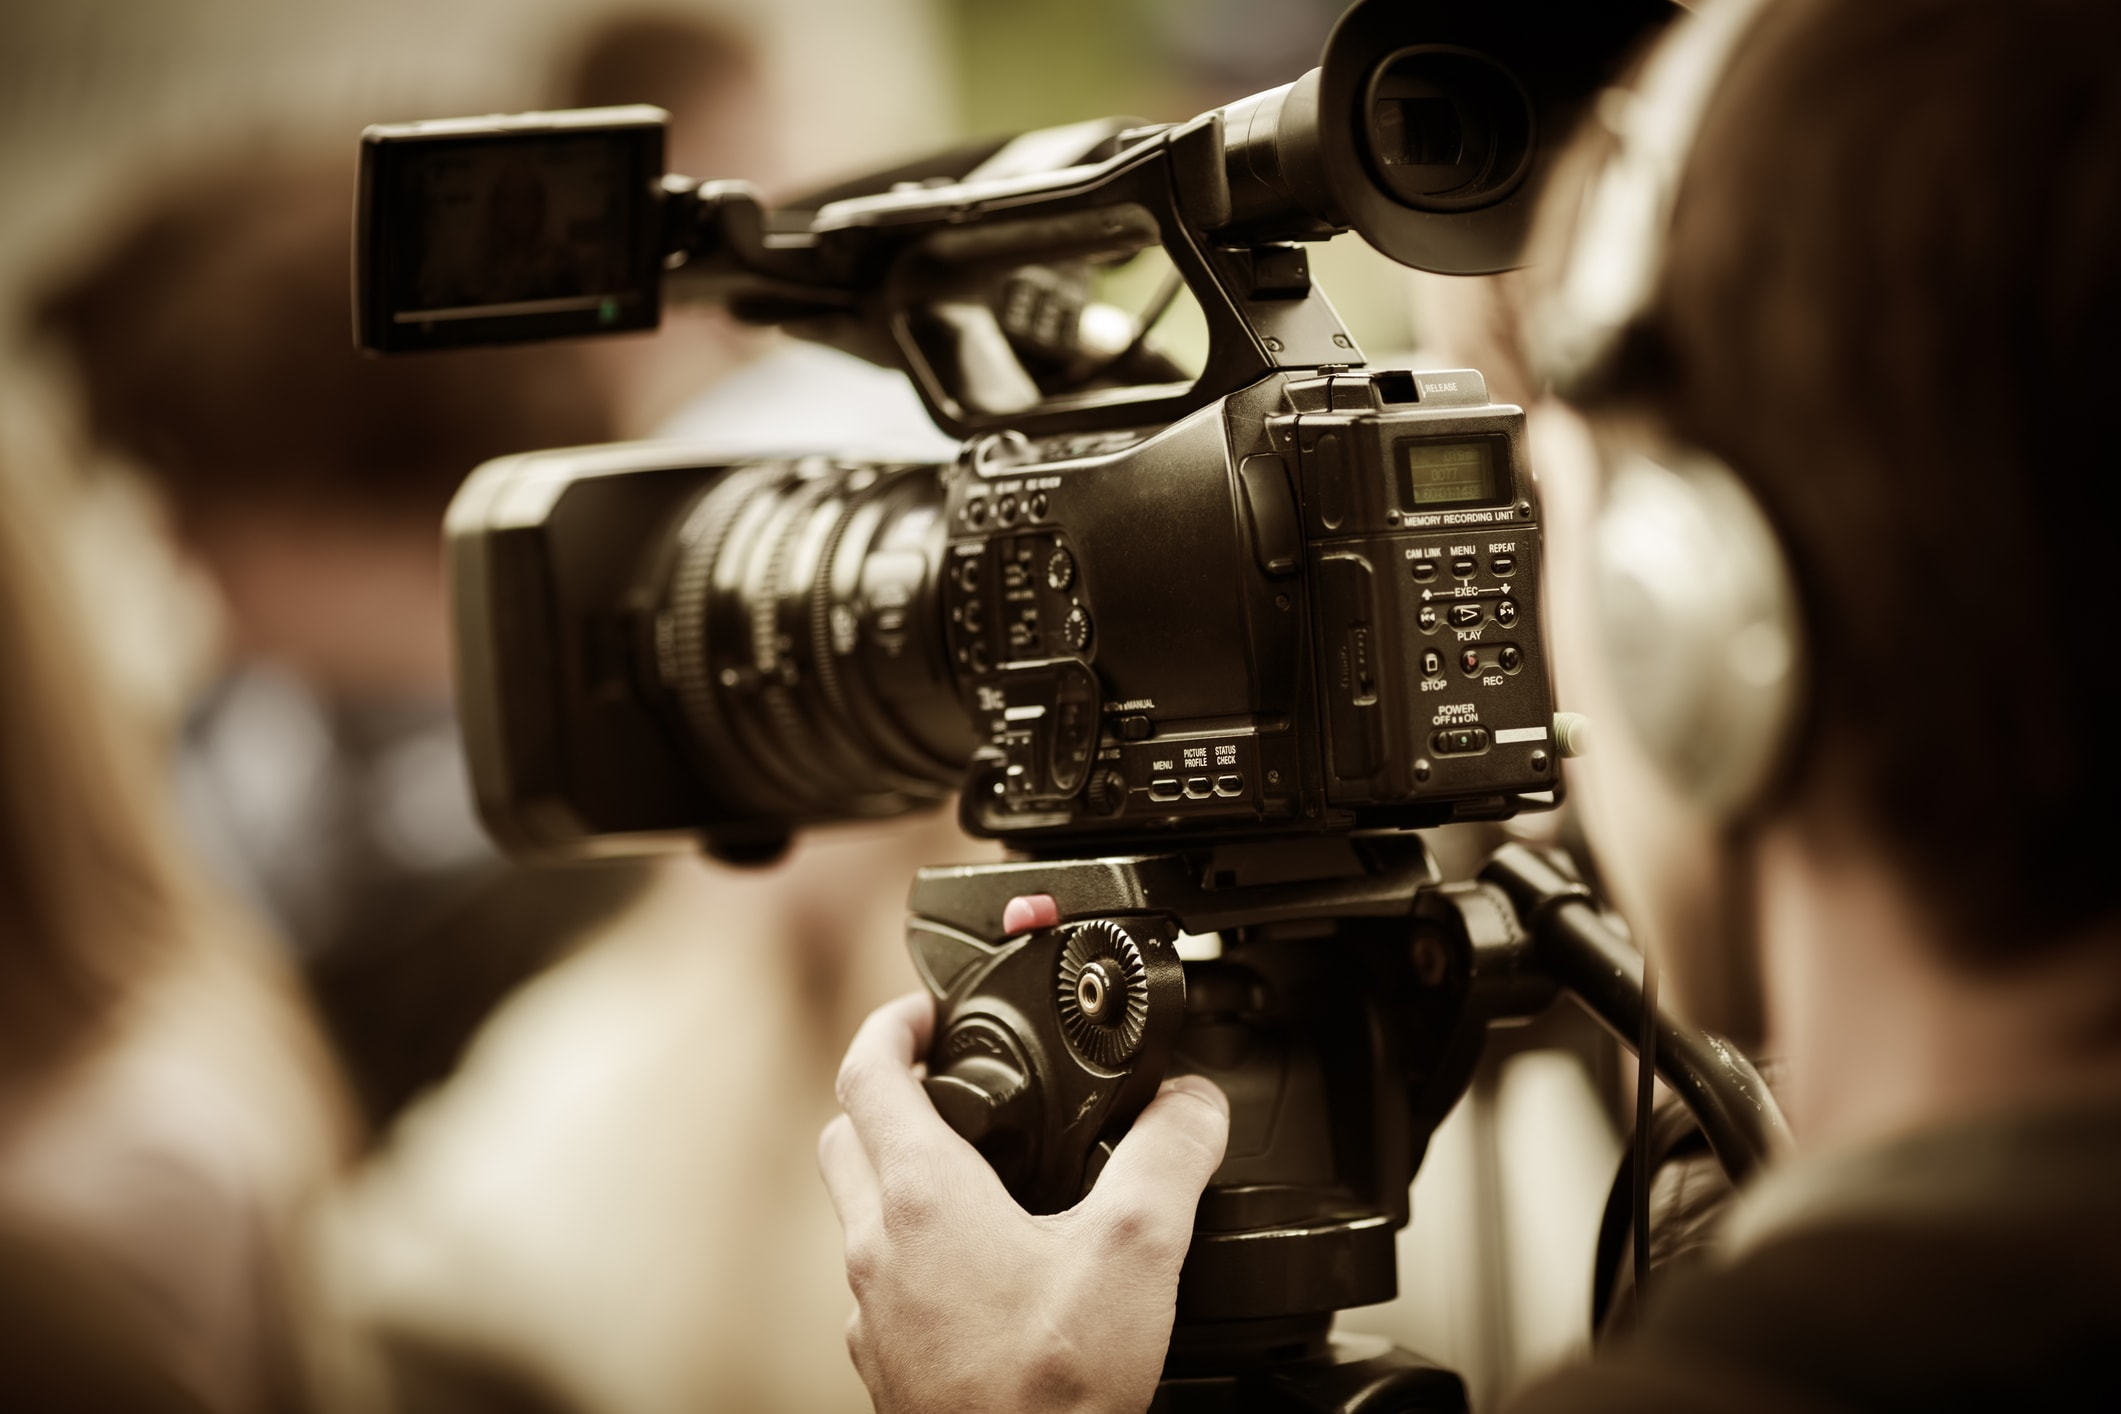 Live Streaming Equipment Which Tripod to Use for Online Video - heads